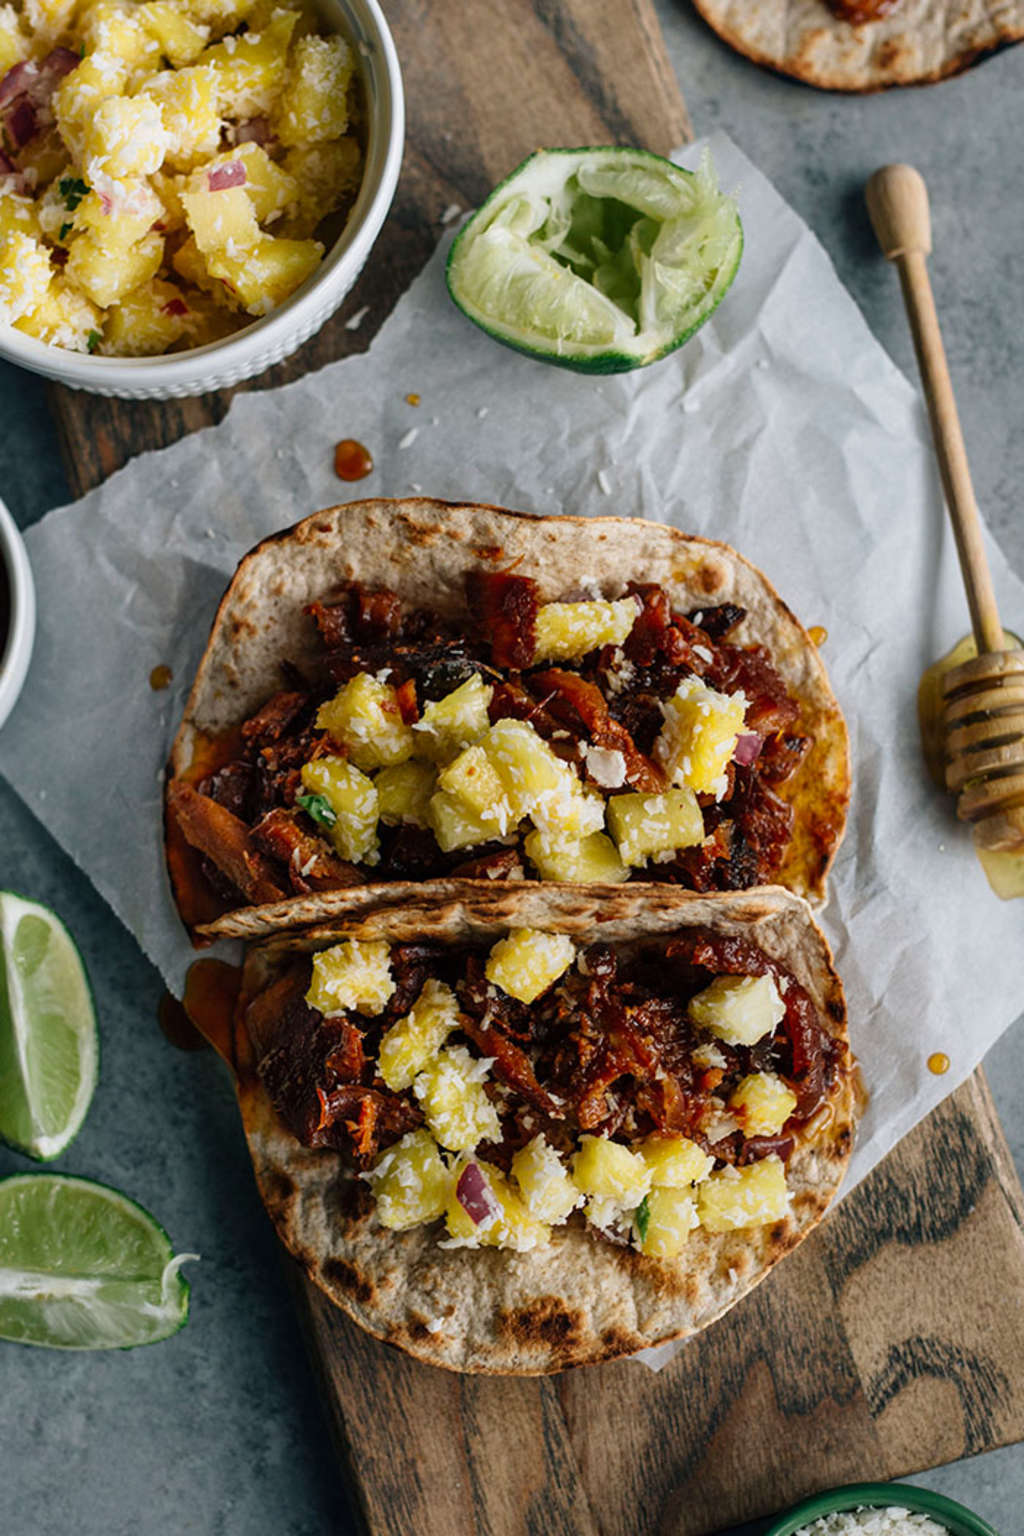 The Slow Cooker Is the Key to These Honey-Ginger Pork Tacos